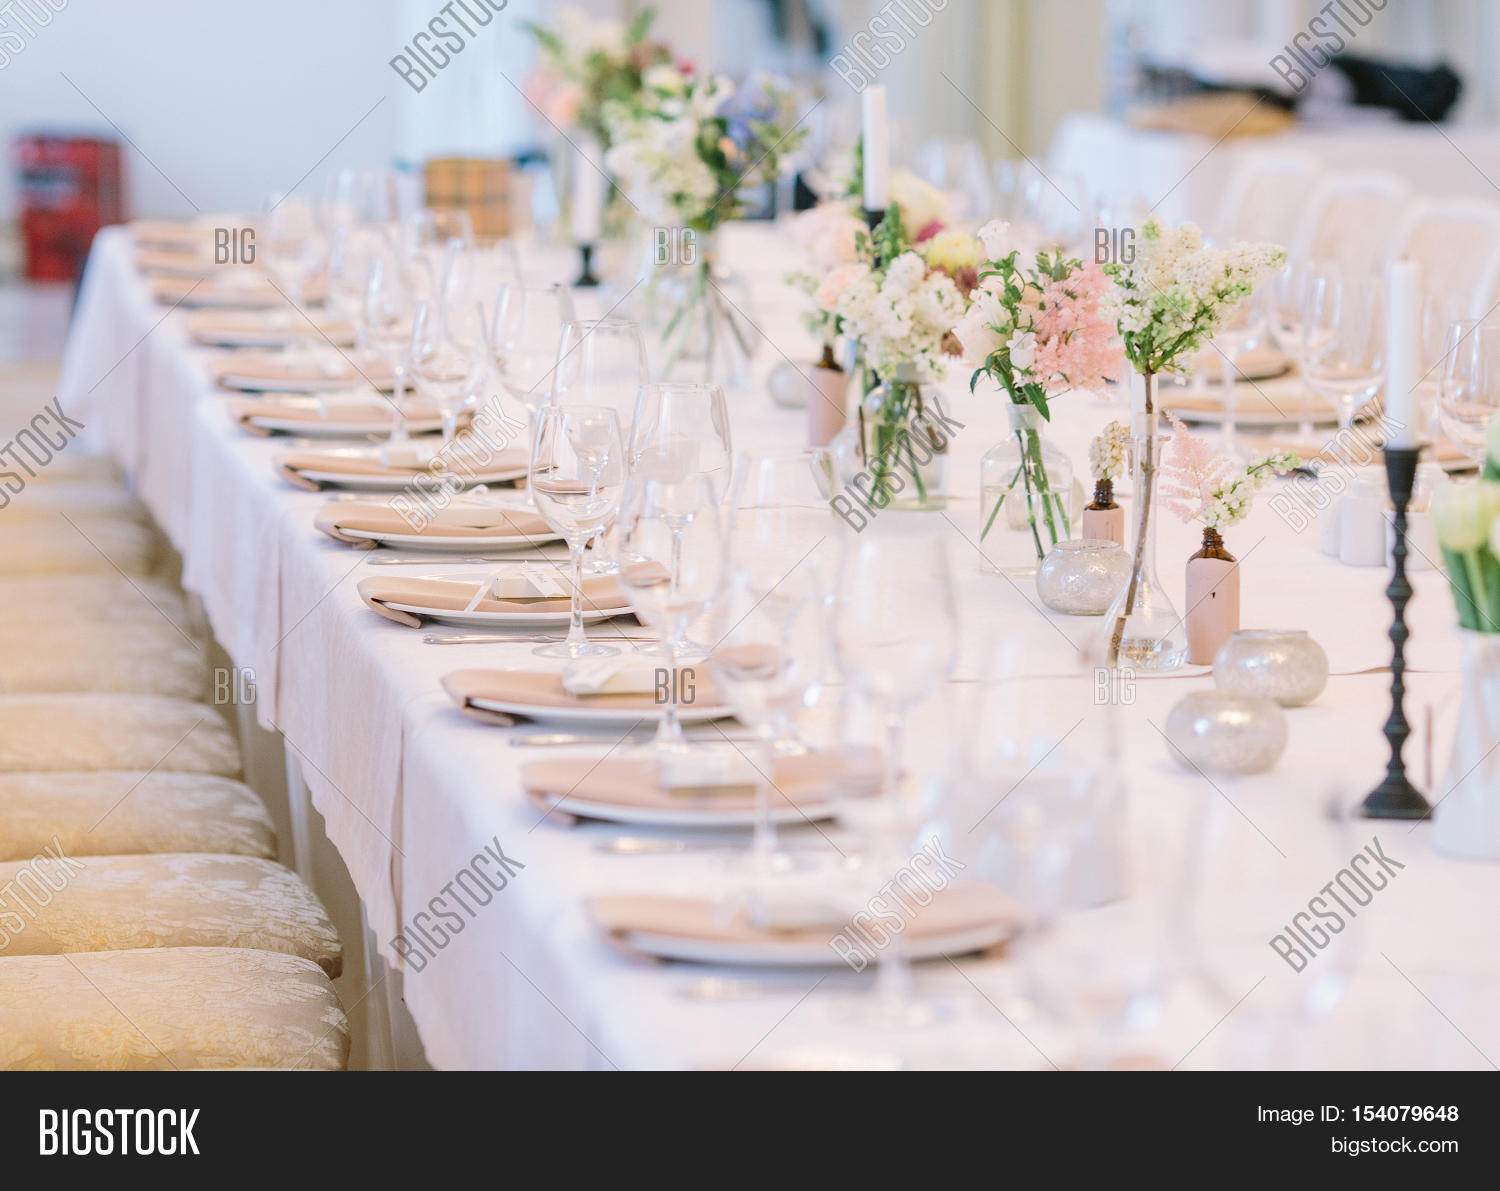 Wedding decor wedding image photo free trial bigstock - Decoration table restaurant gastronomique ...